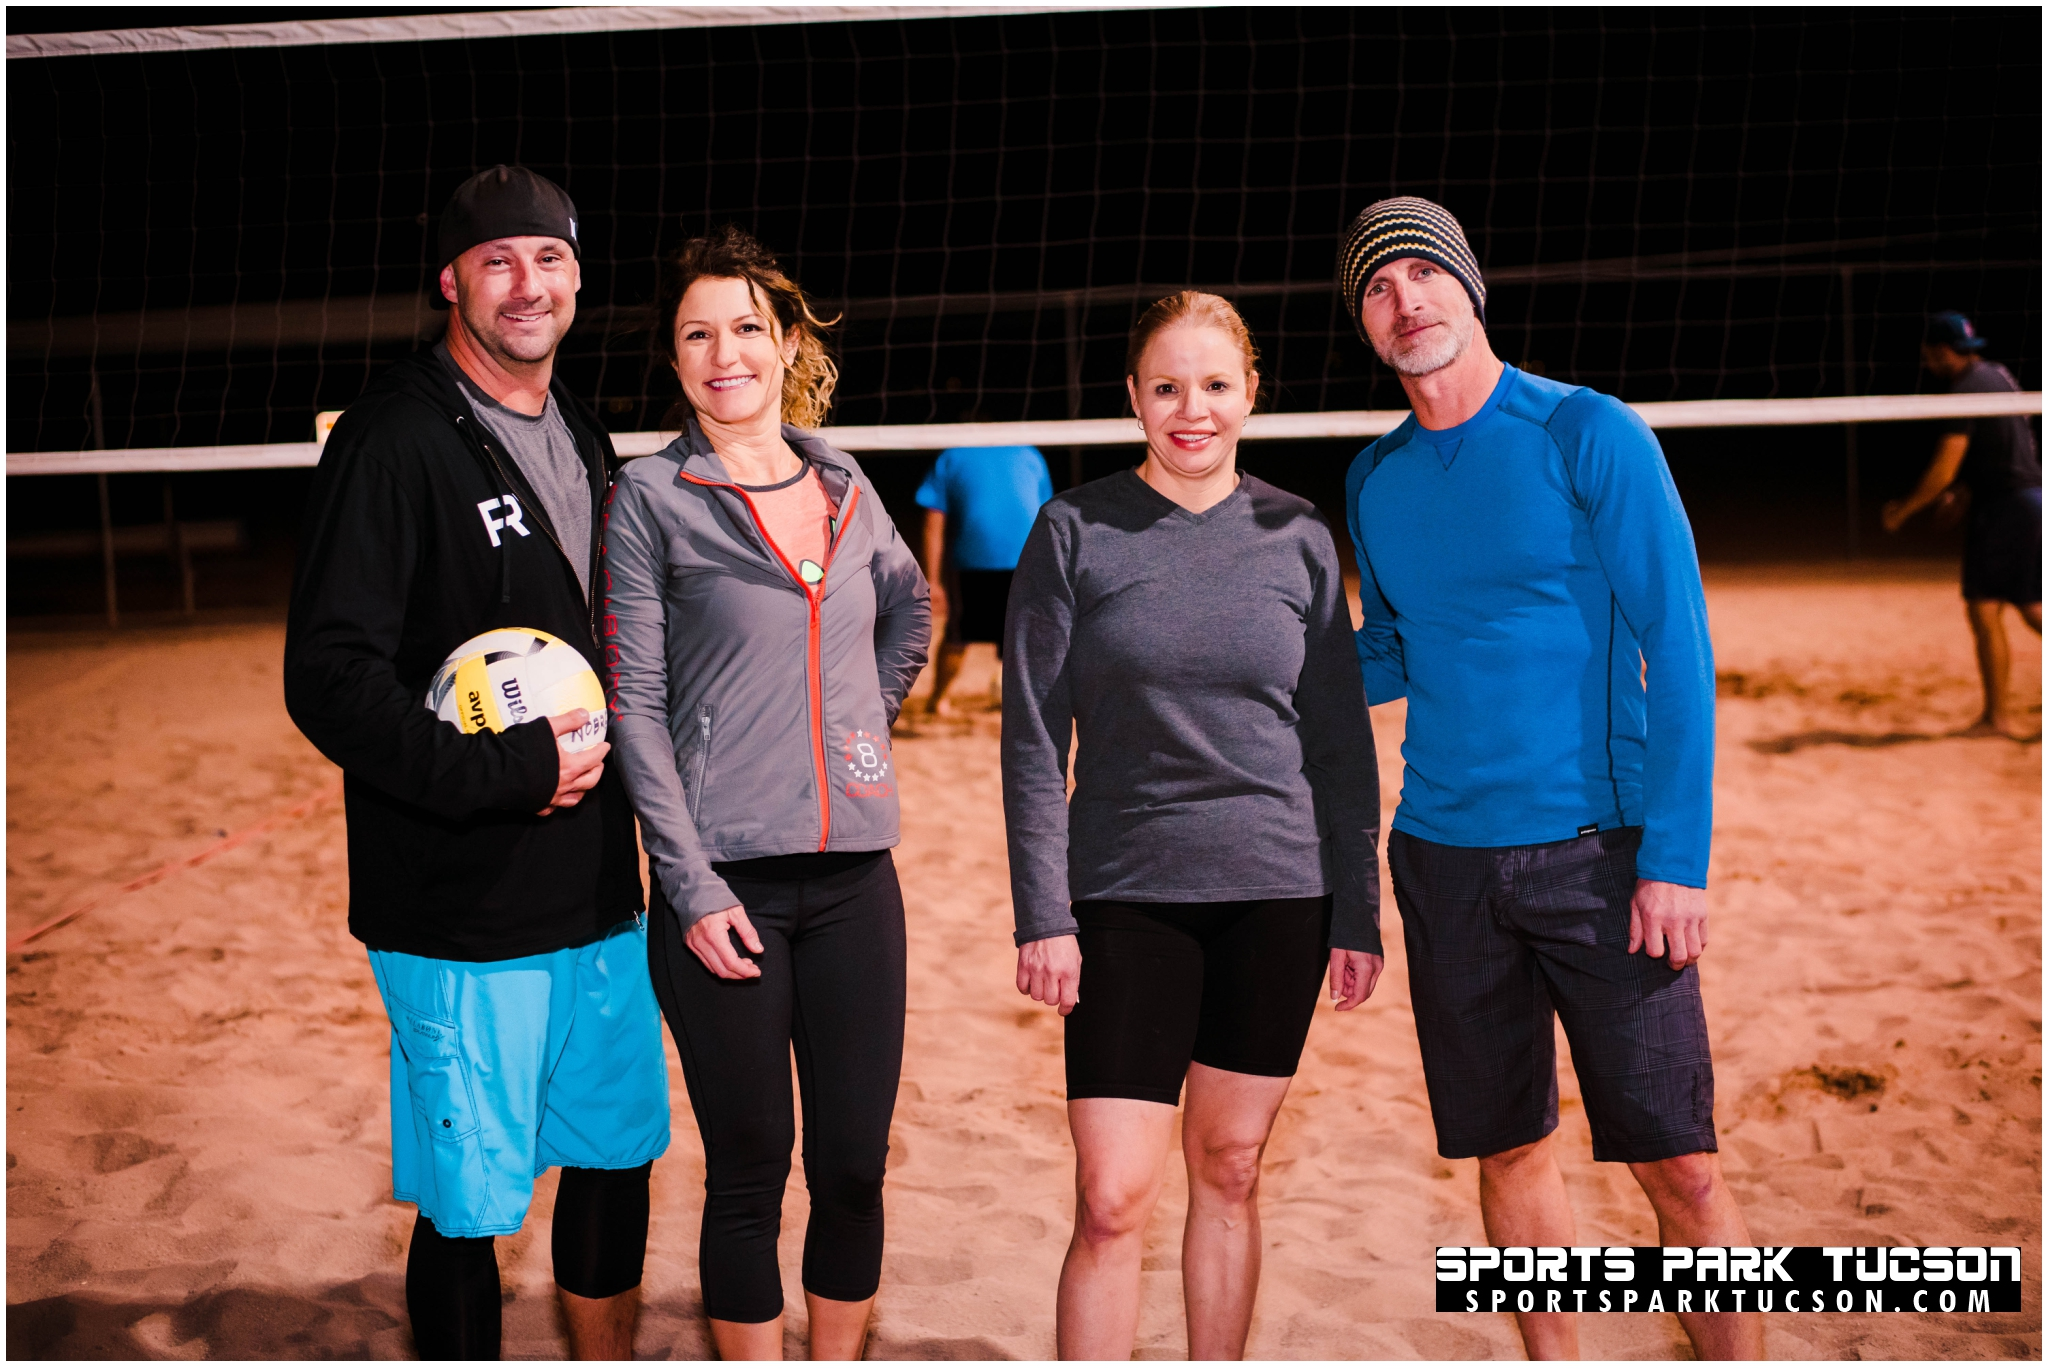 Volleyball Wed Co-ed 4 v 4 - Gold, Team: set it & forget it